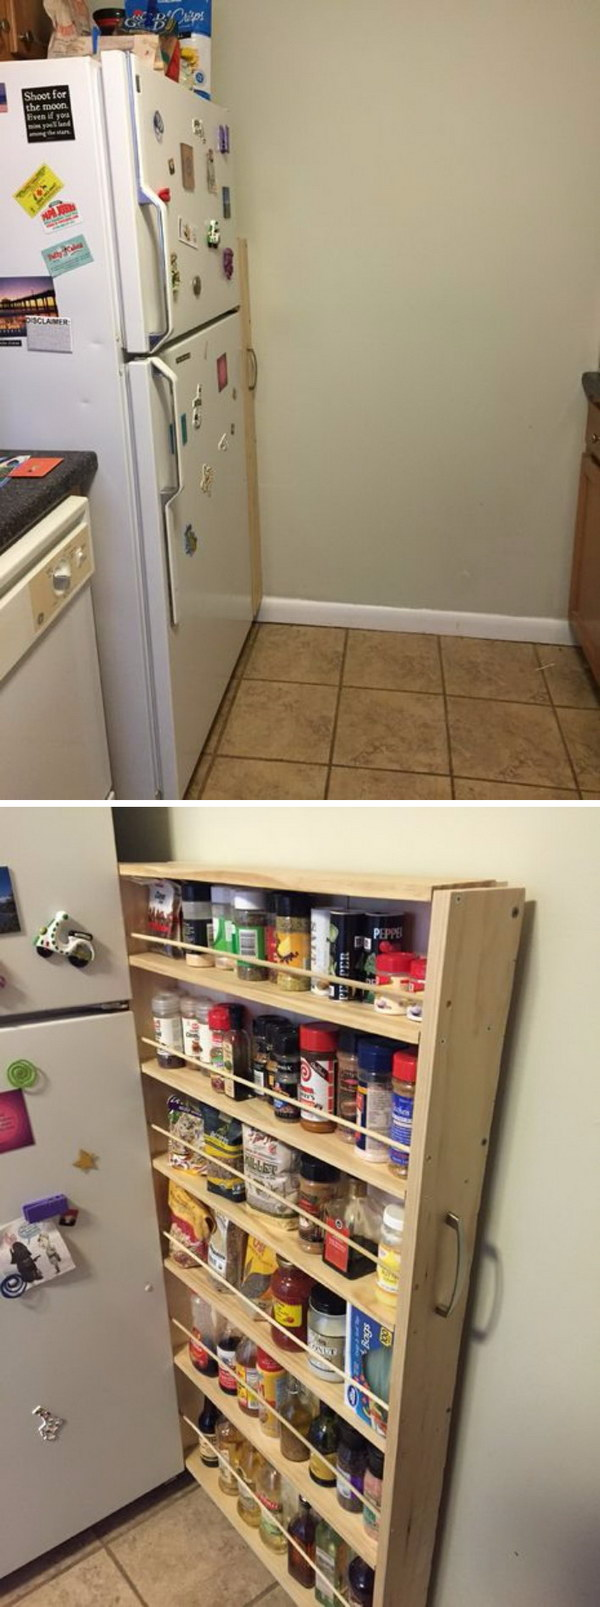 10 Creative Examples For Dividing Small Spaces: 25 Creative Hidden Storage Ideas For Small Spaces